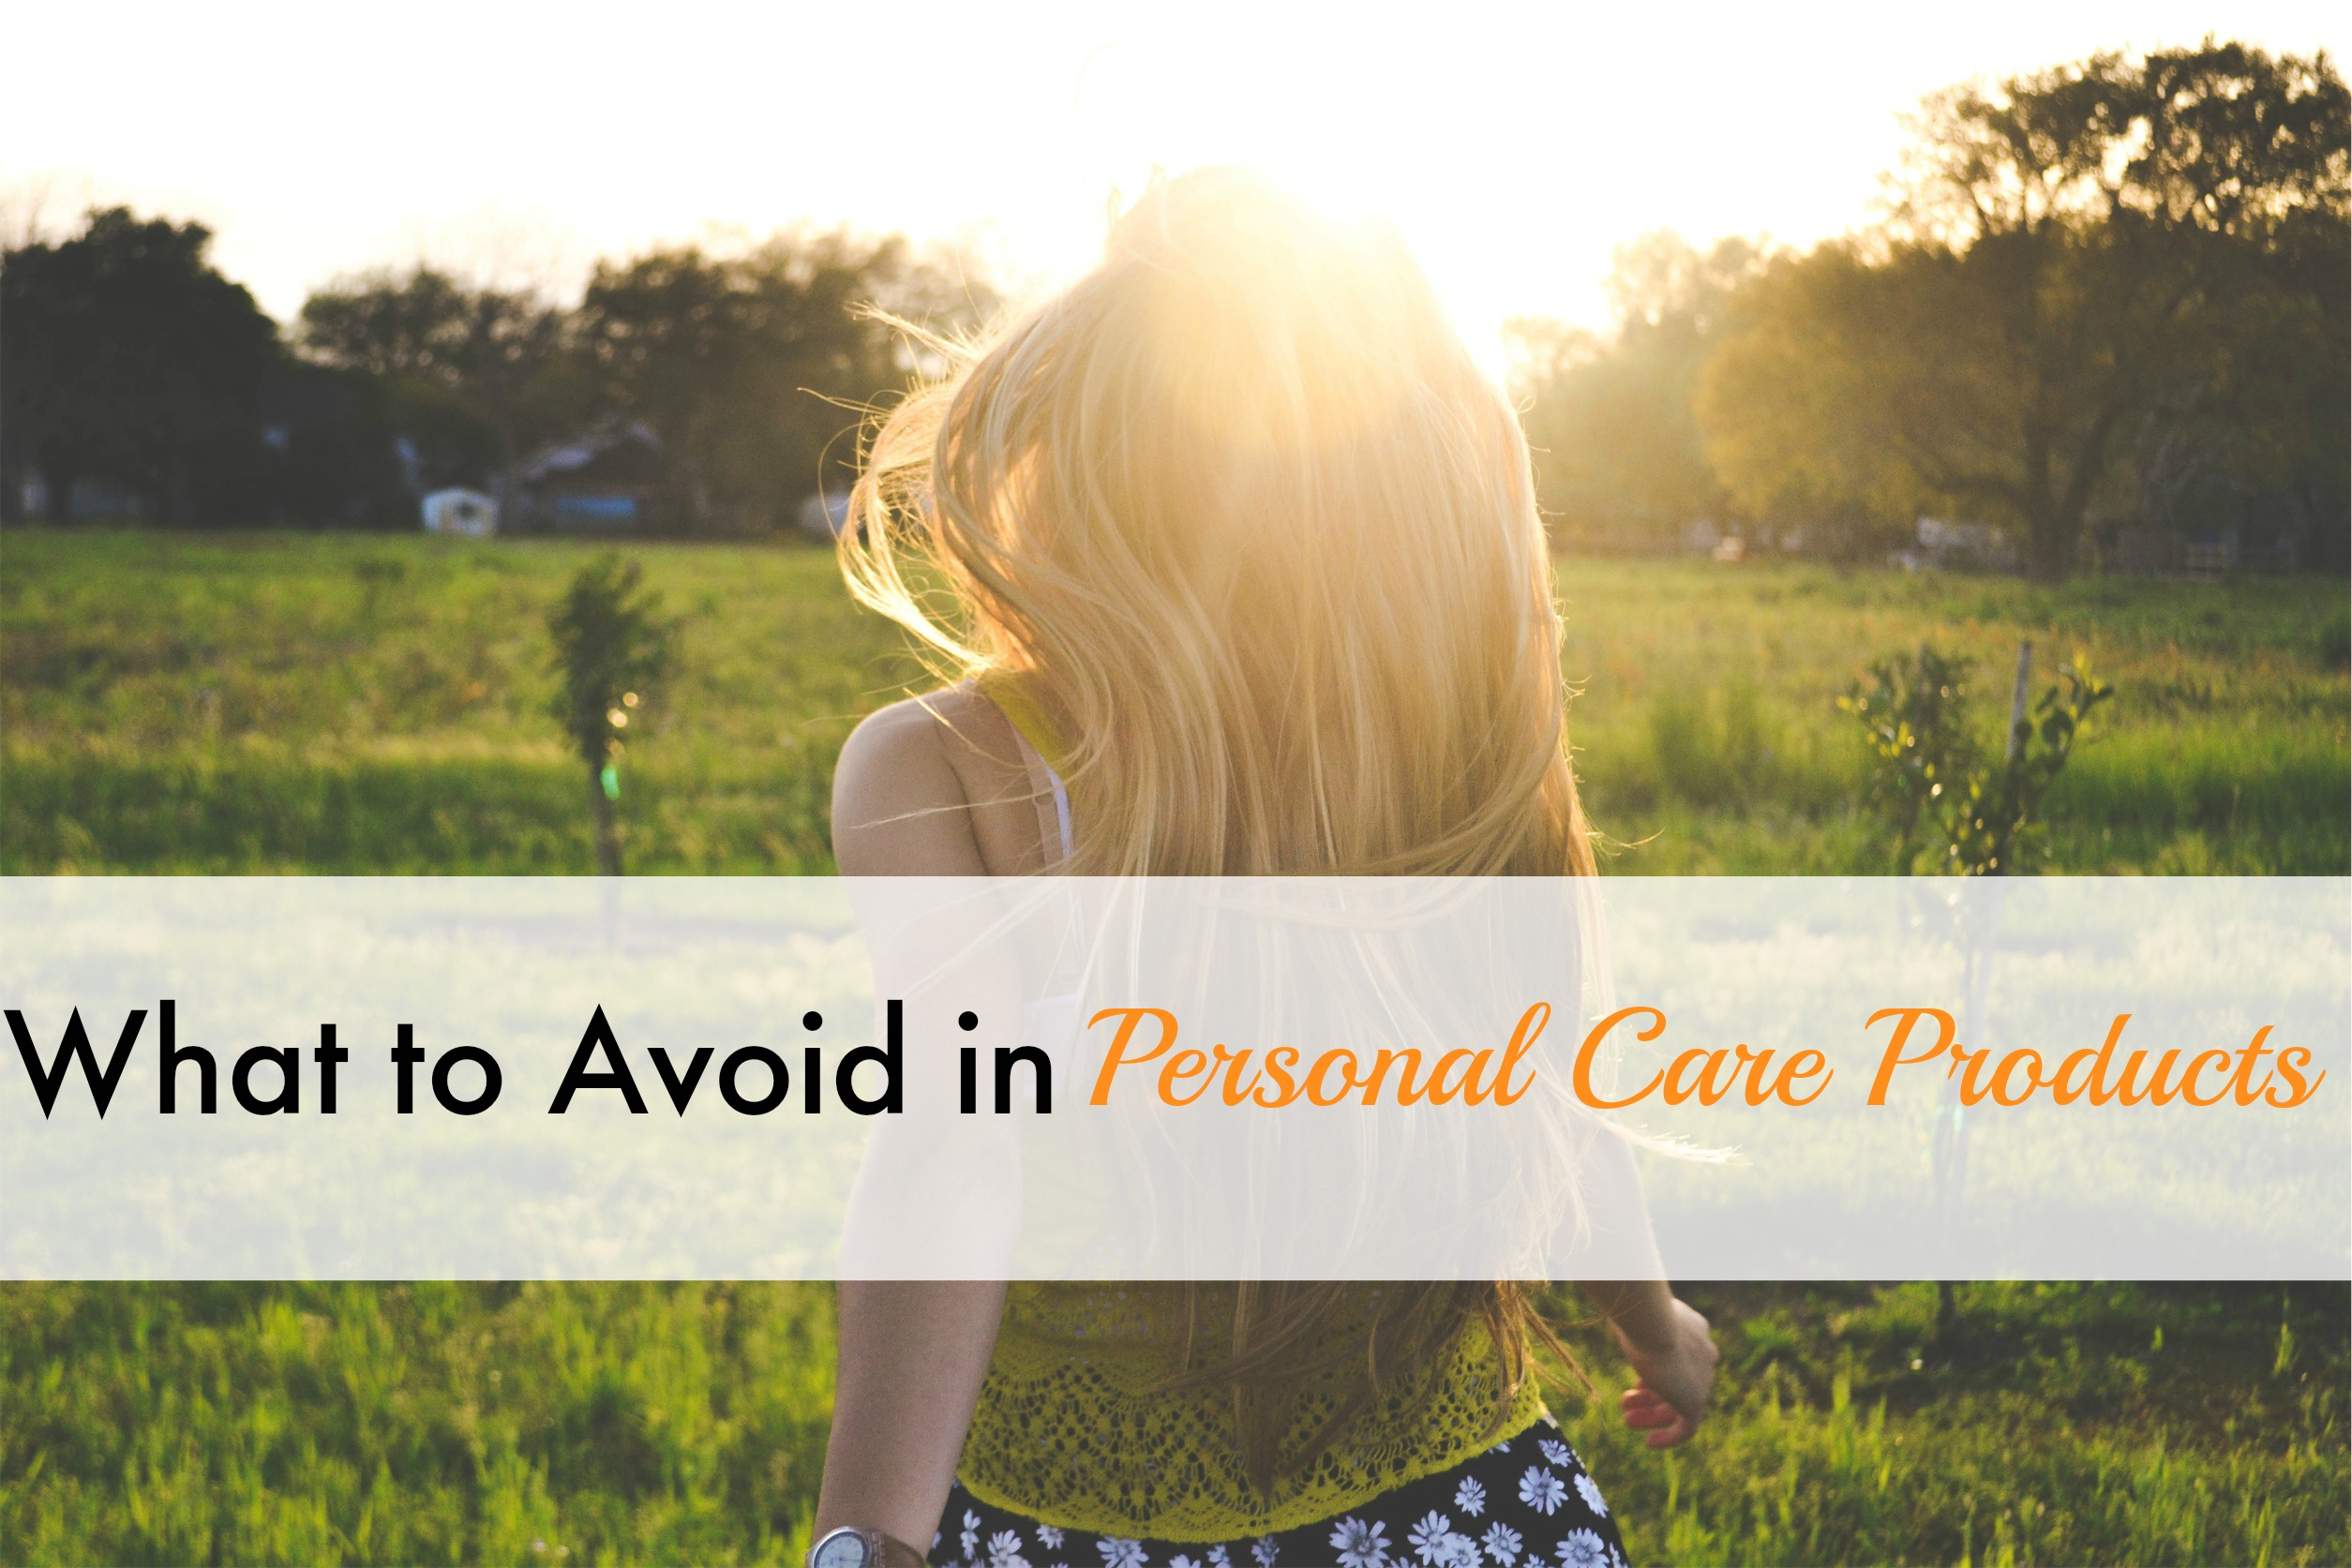 WHAT TO AVOID IN PERSONAL CARE PRODUCTS